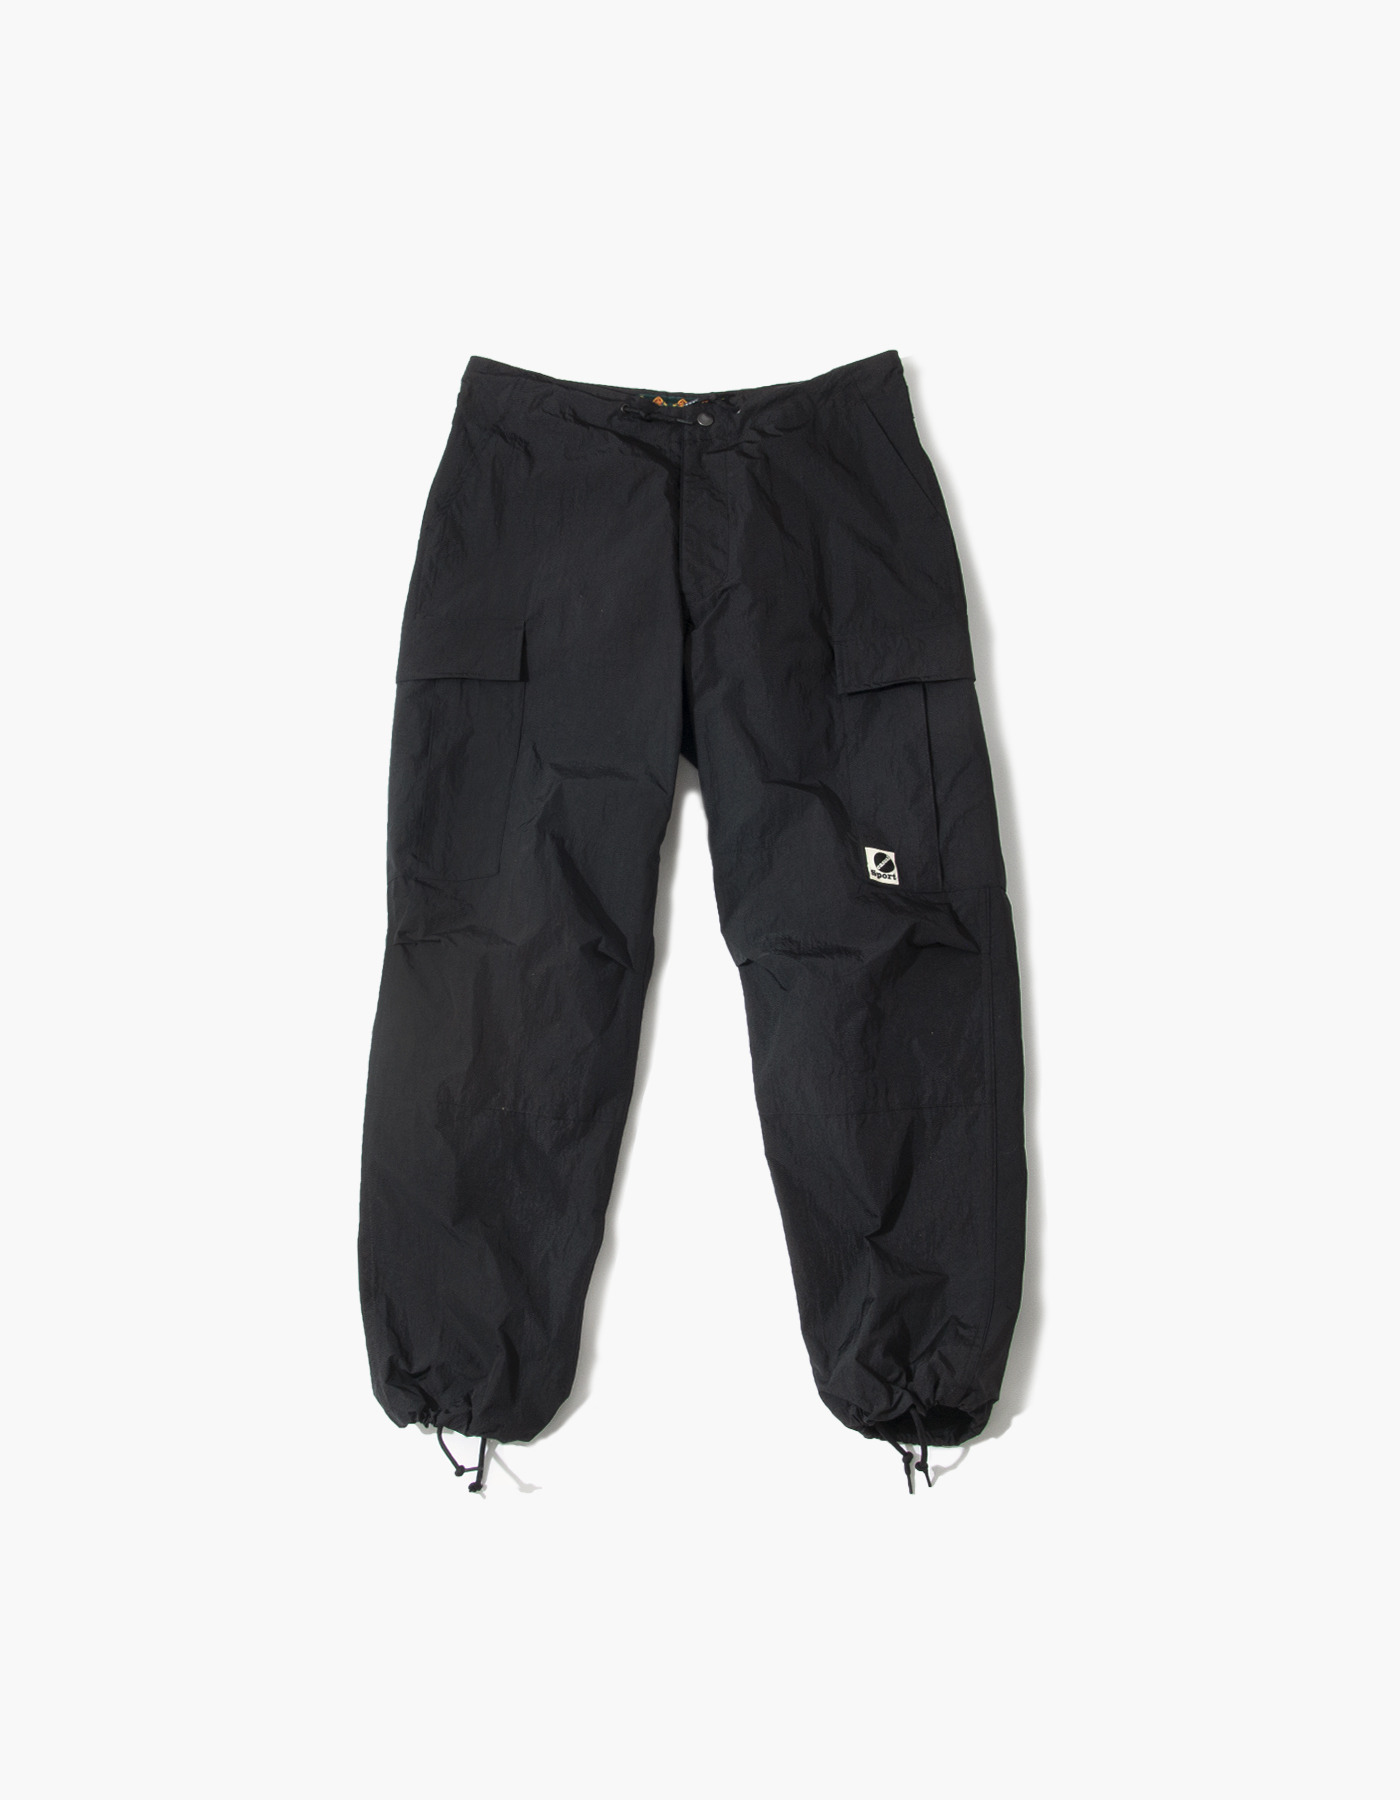 SALT NYLON CARGO PANTS / BLACK